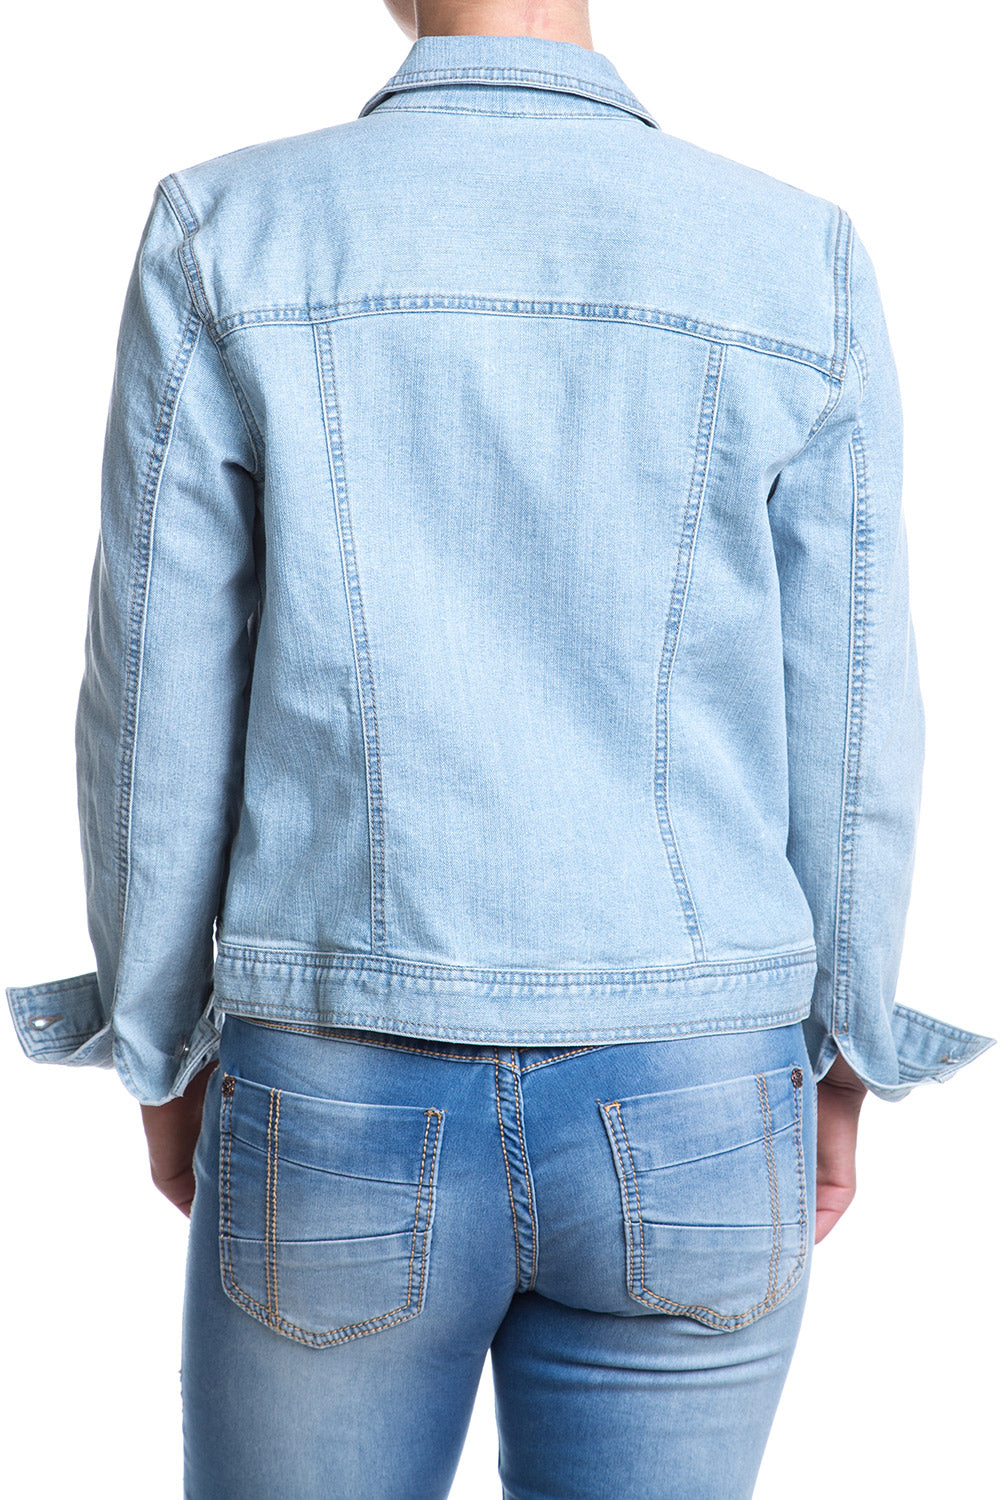 Type 1 Denim Dream Jacket